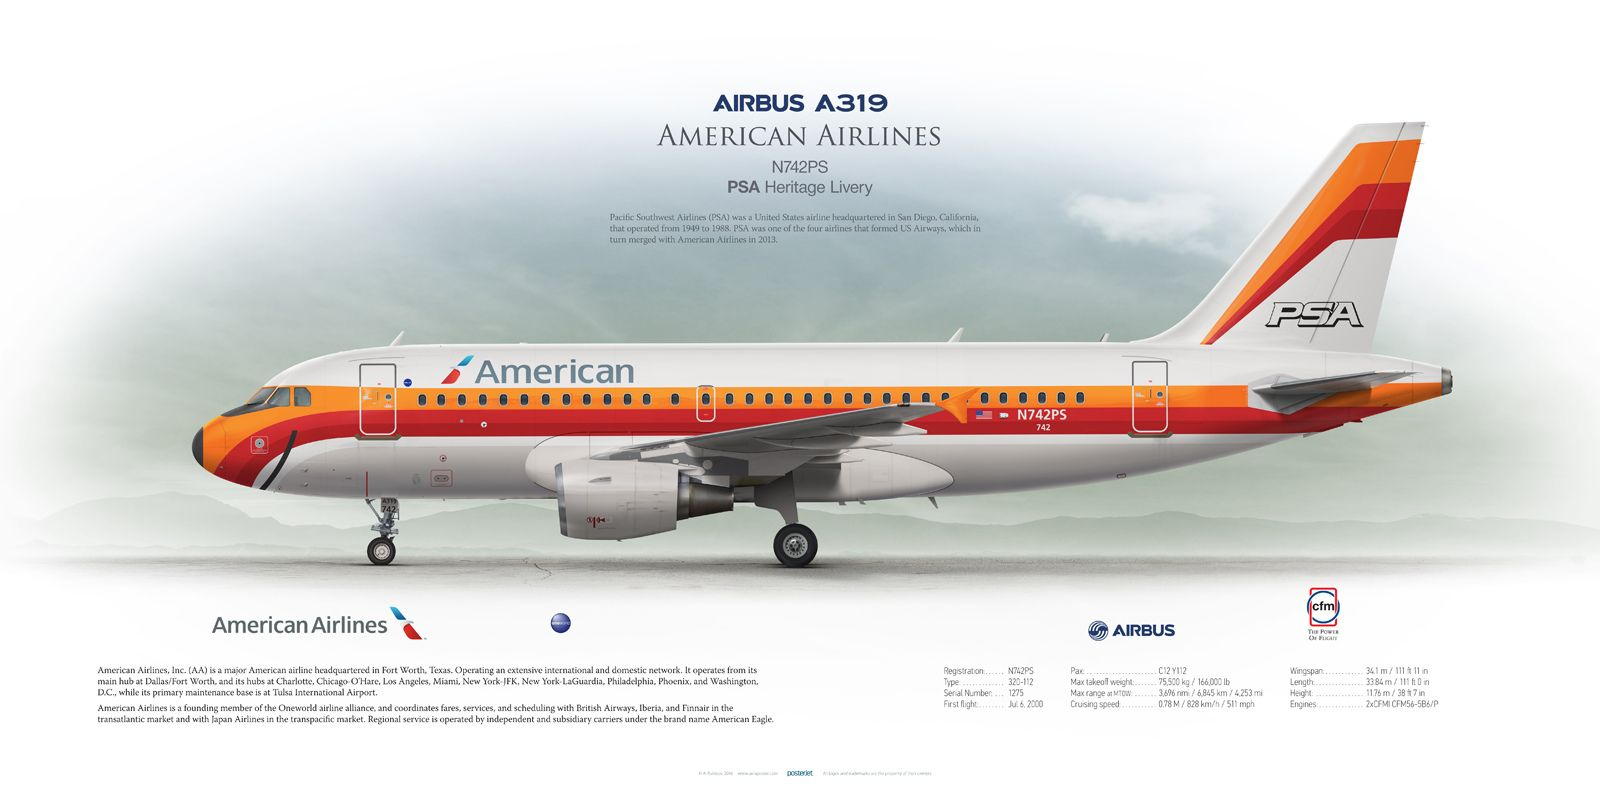 Airbus A319 American Airlines Psa Heritage Livery